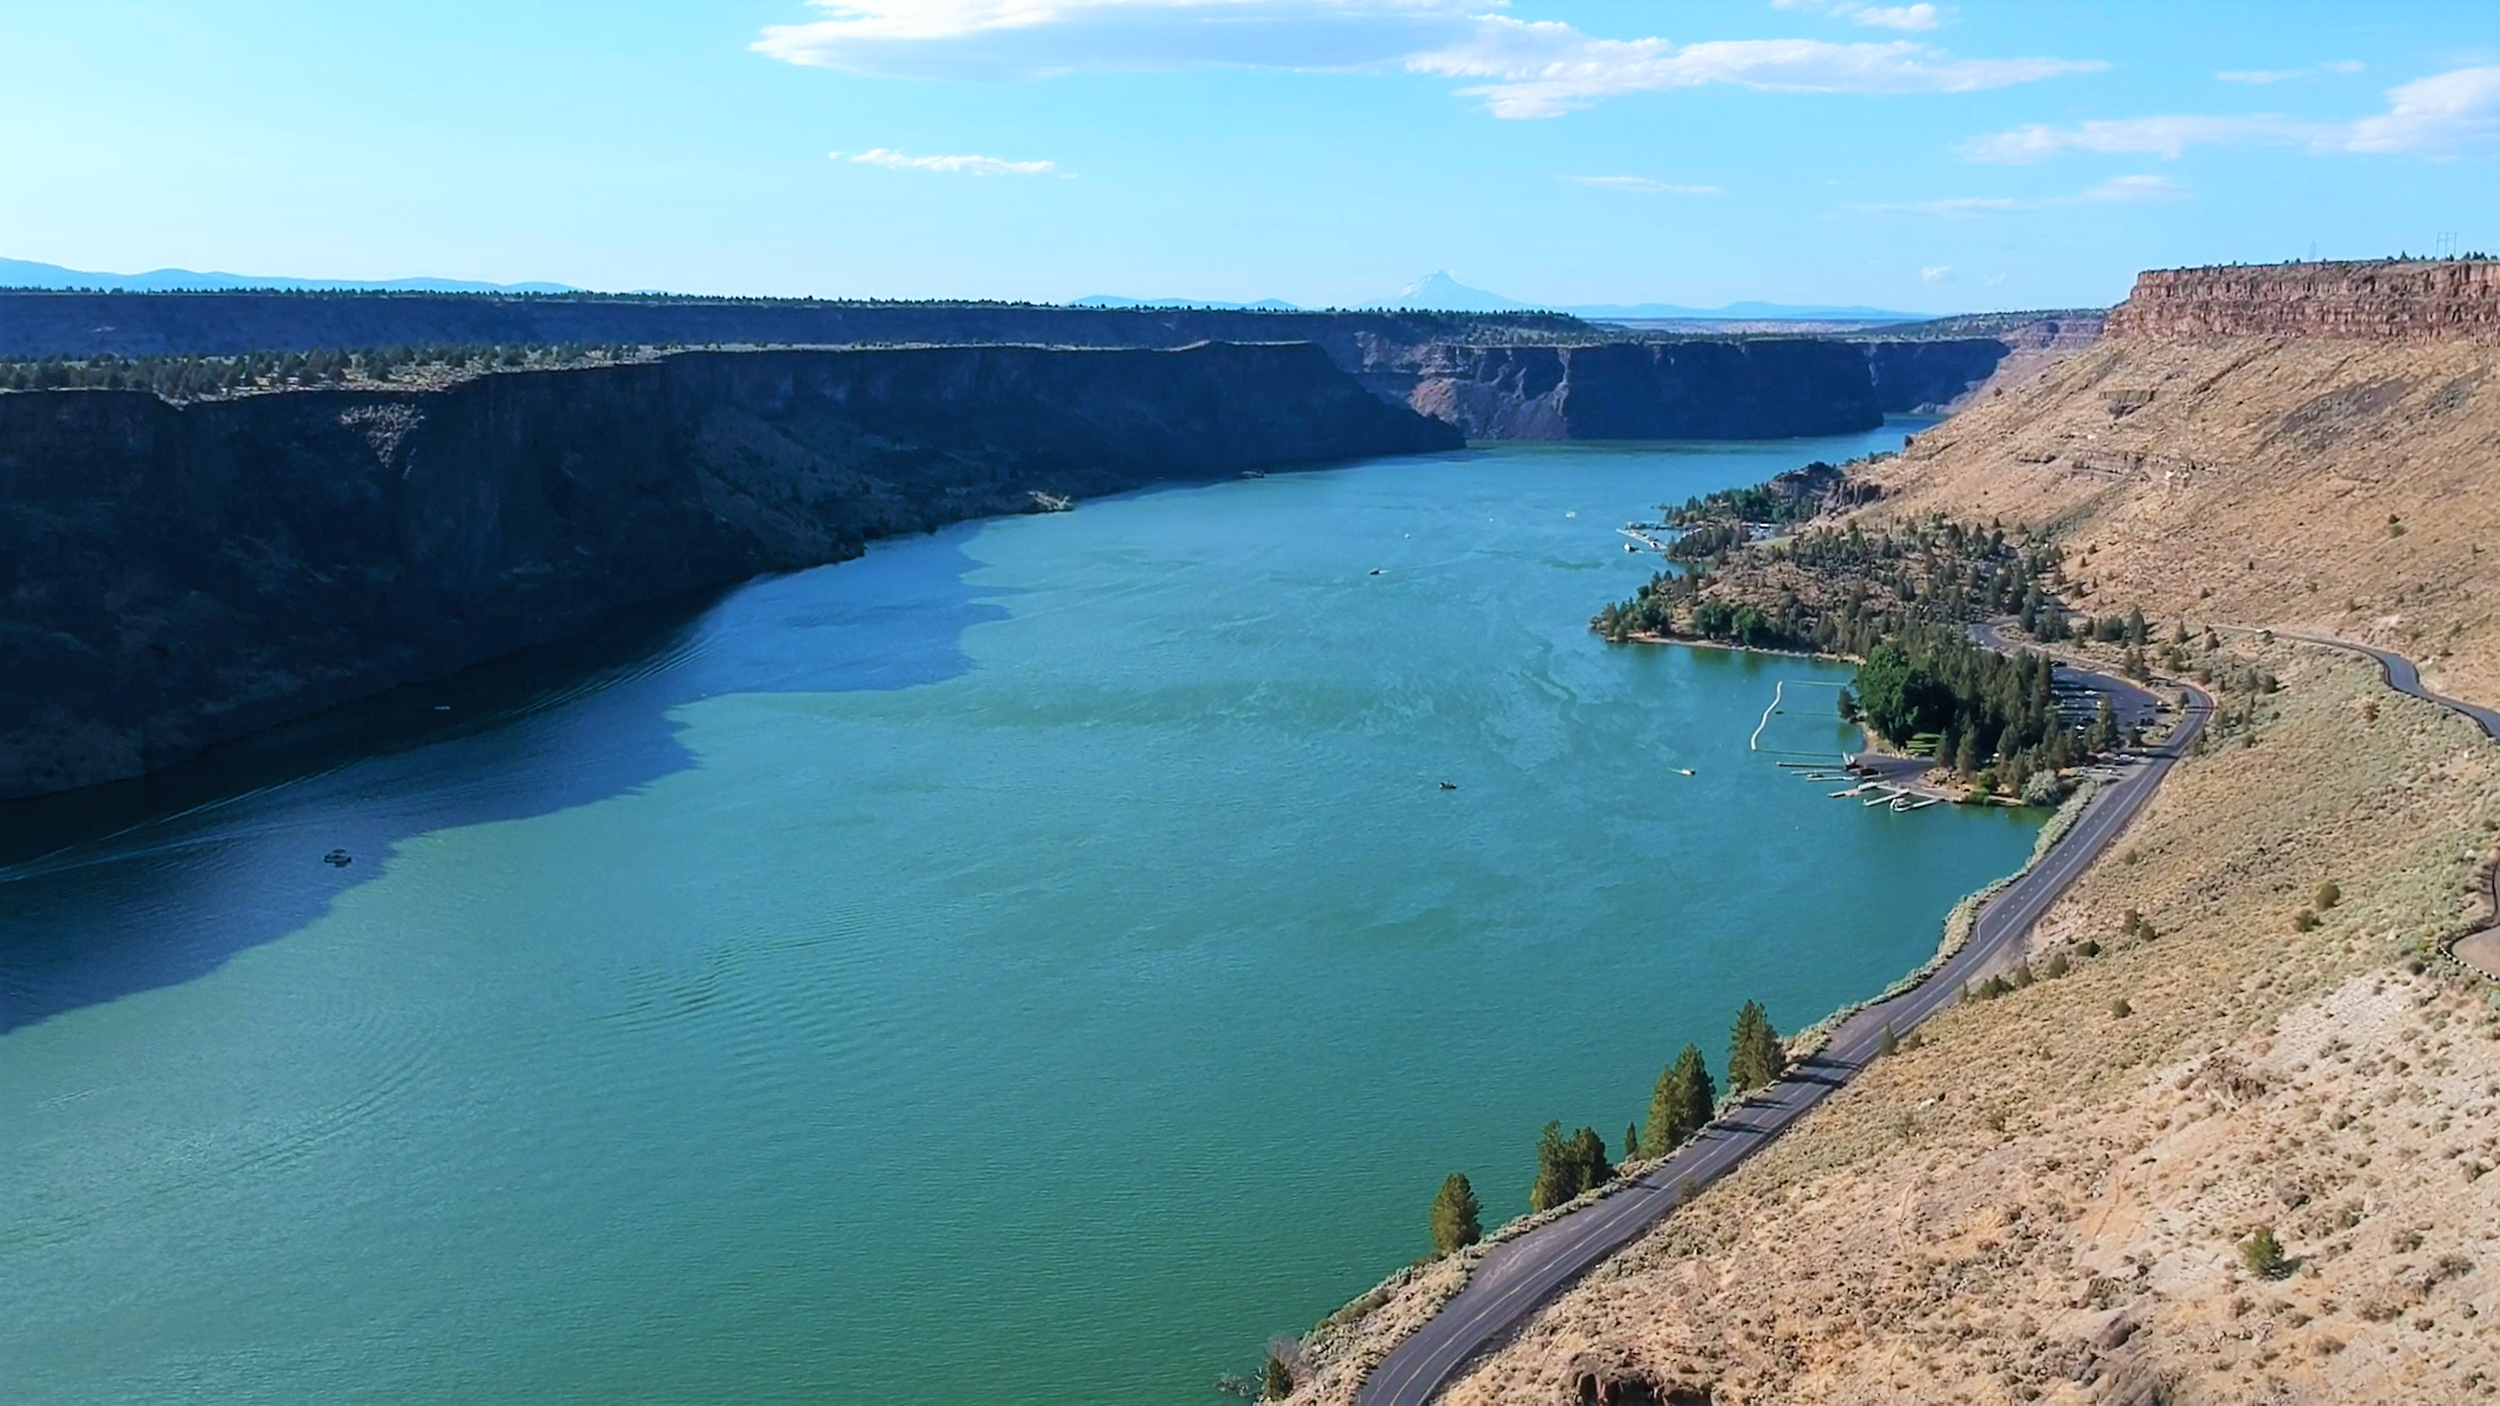 The Cove Palisades State Park in Oregon